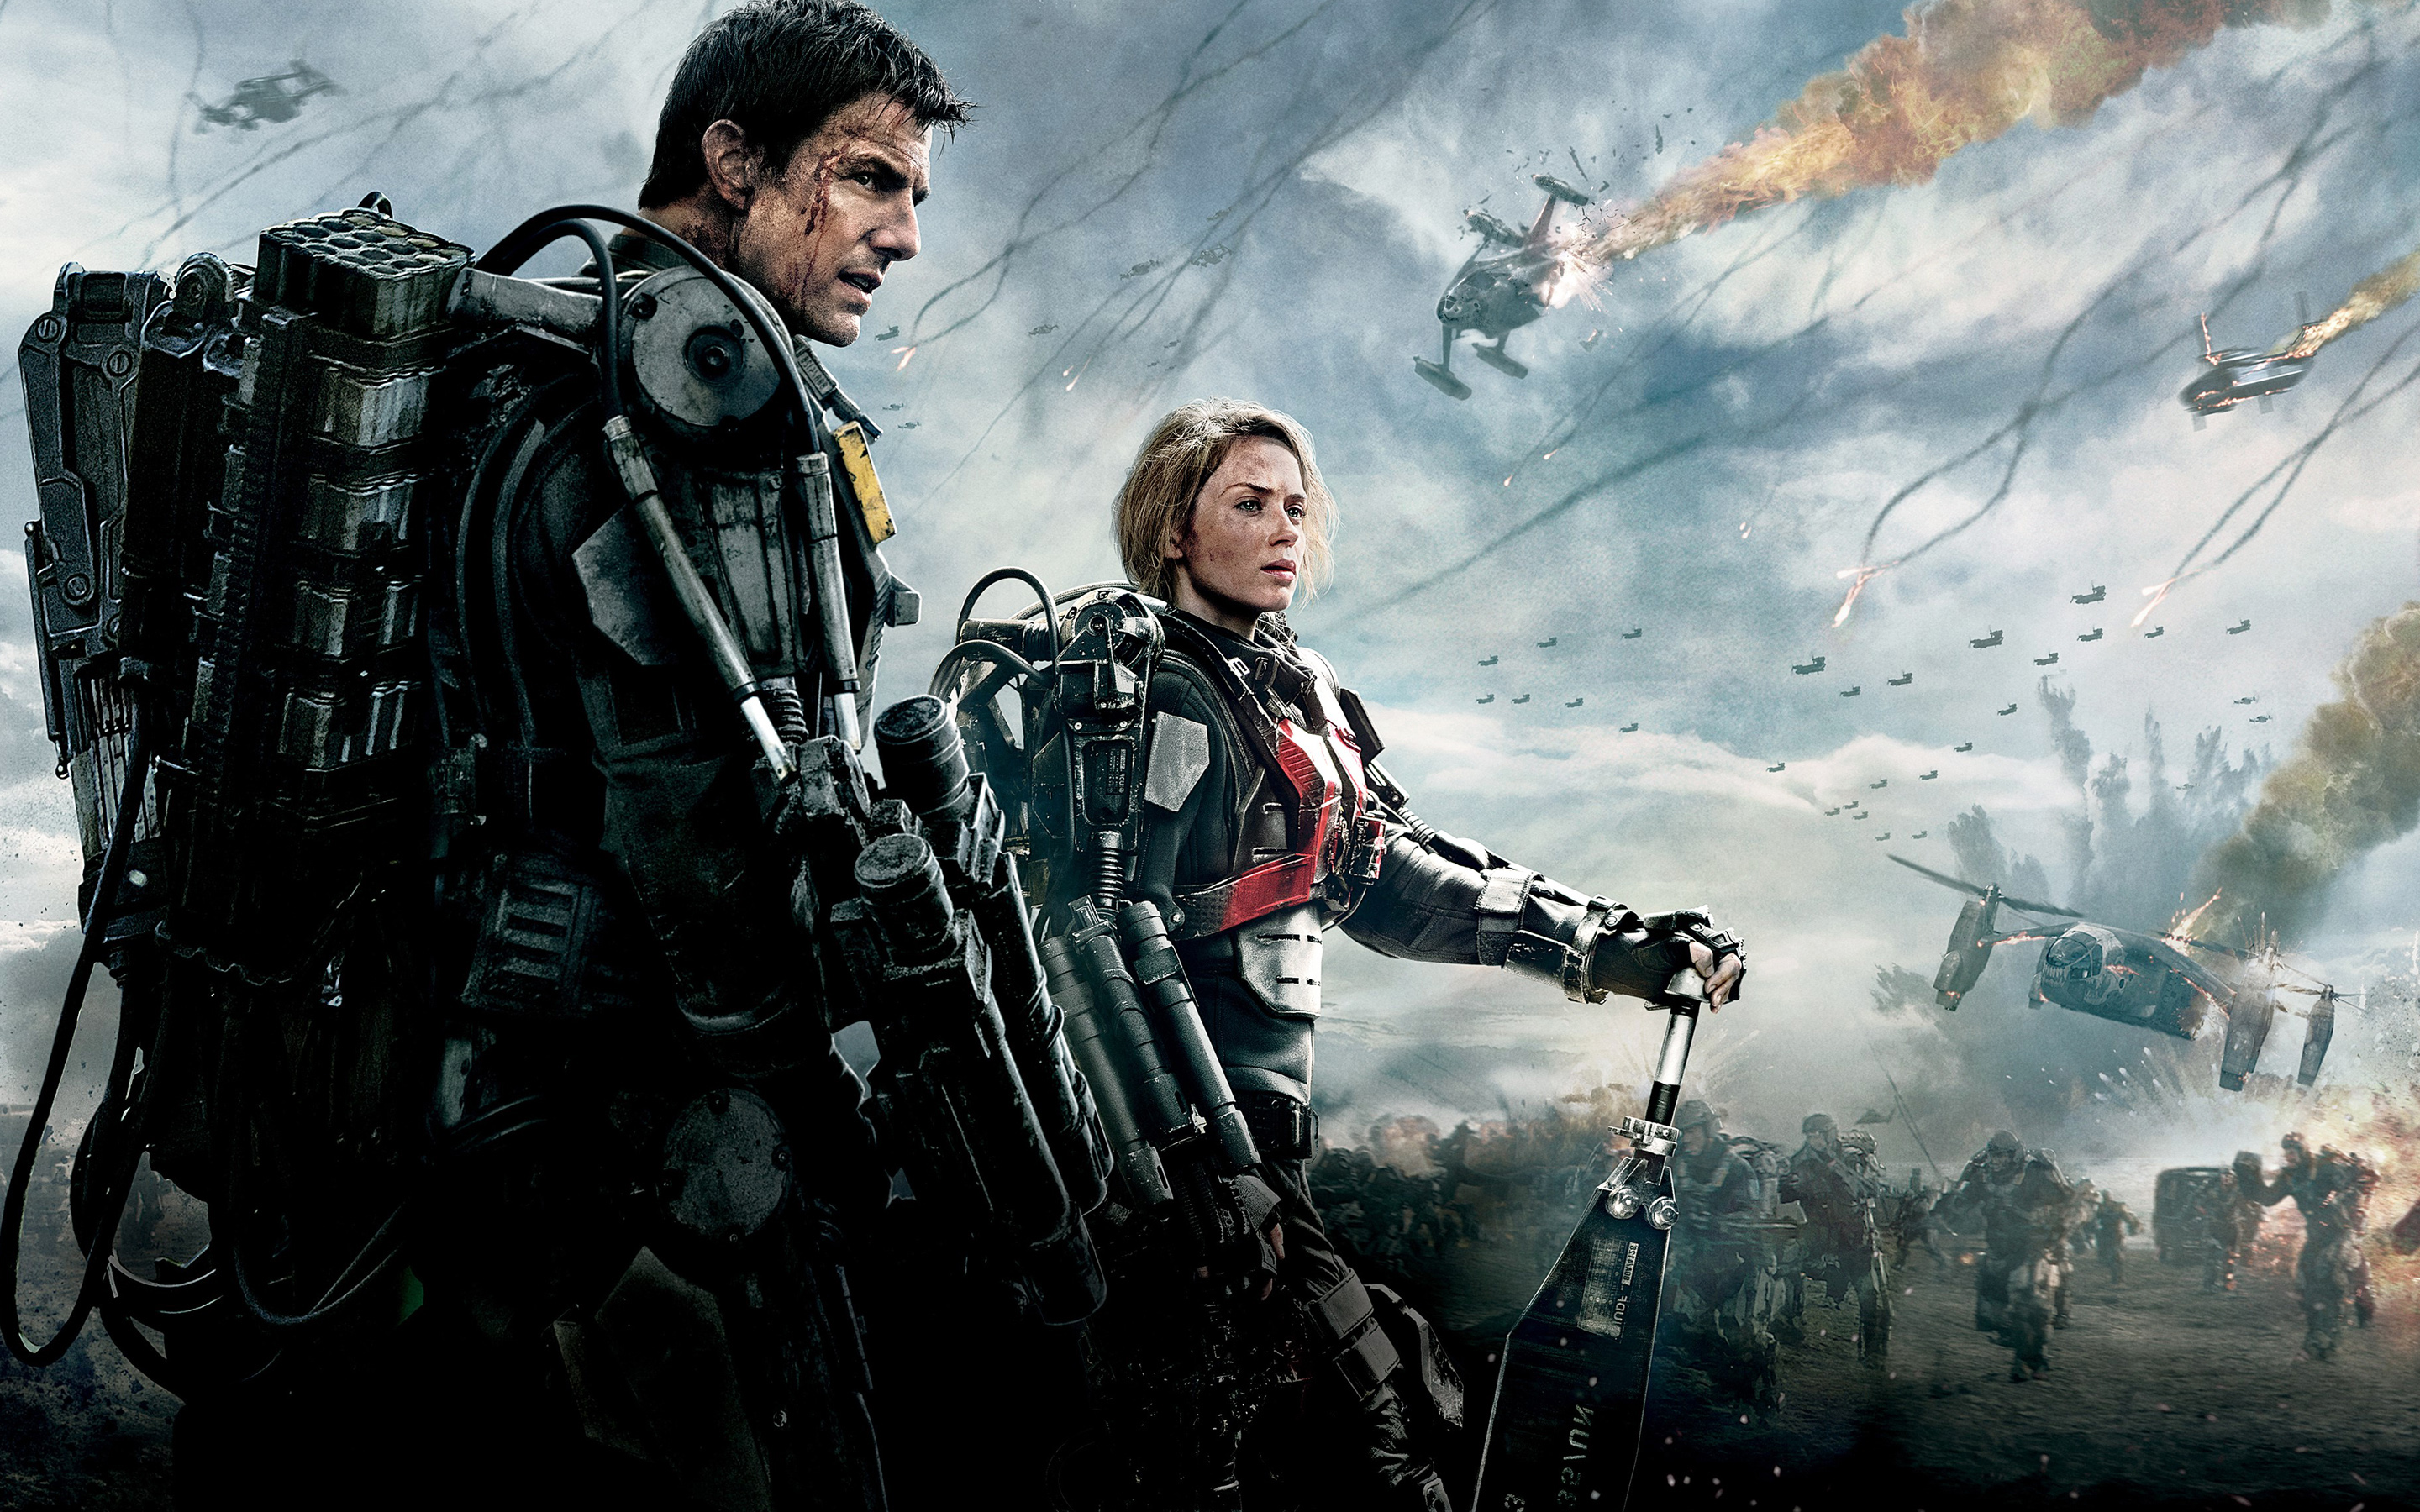 edge-of-tomorrow-tom-cruise-emily-blunt-slider.jpg